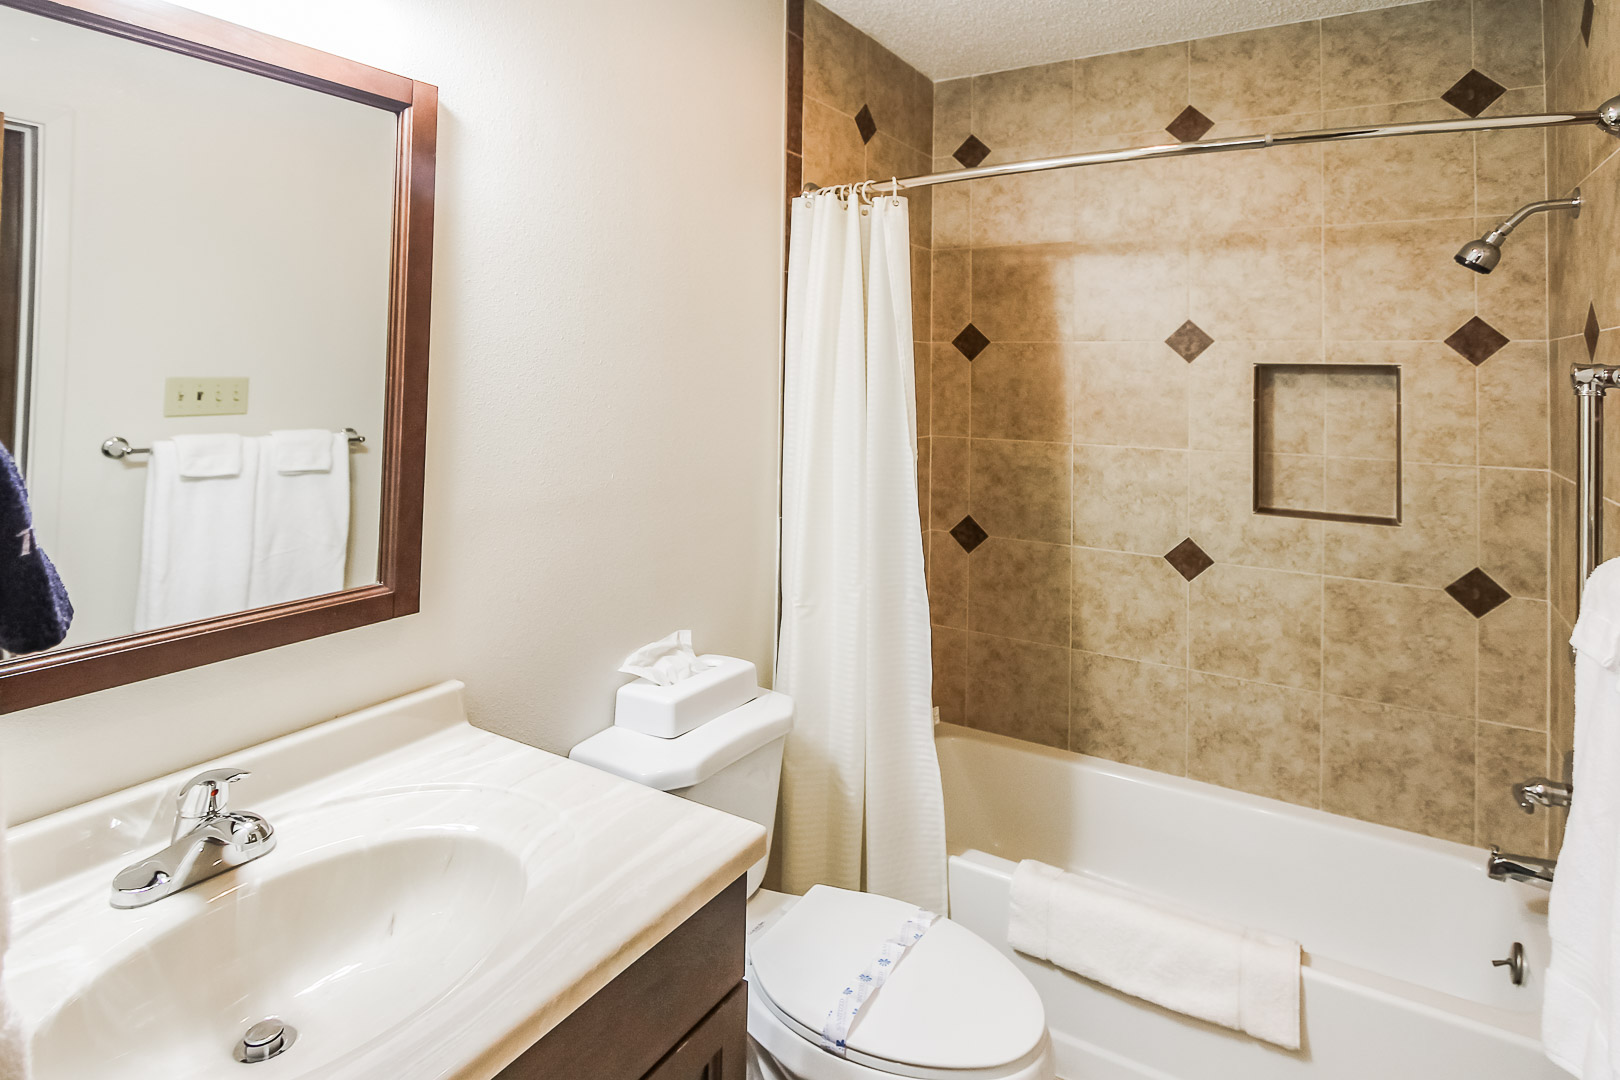 Shores at Lake Travis - Unit Amenities - Bathroom